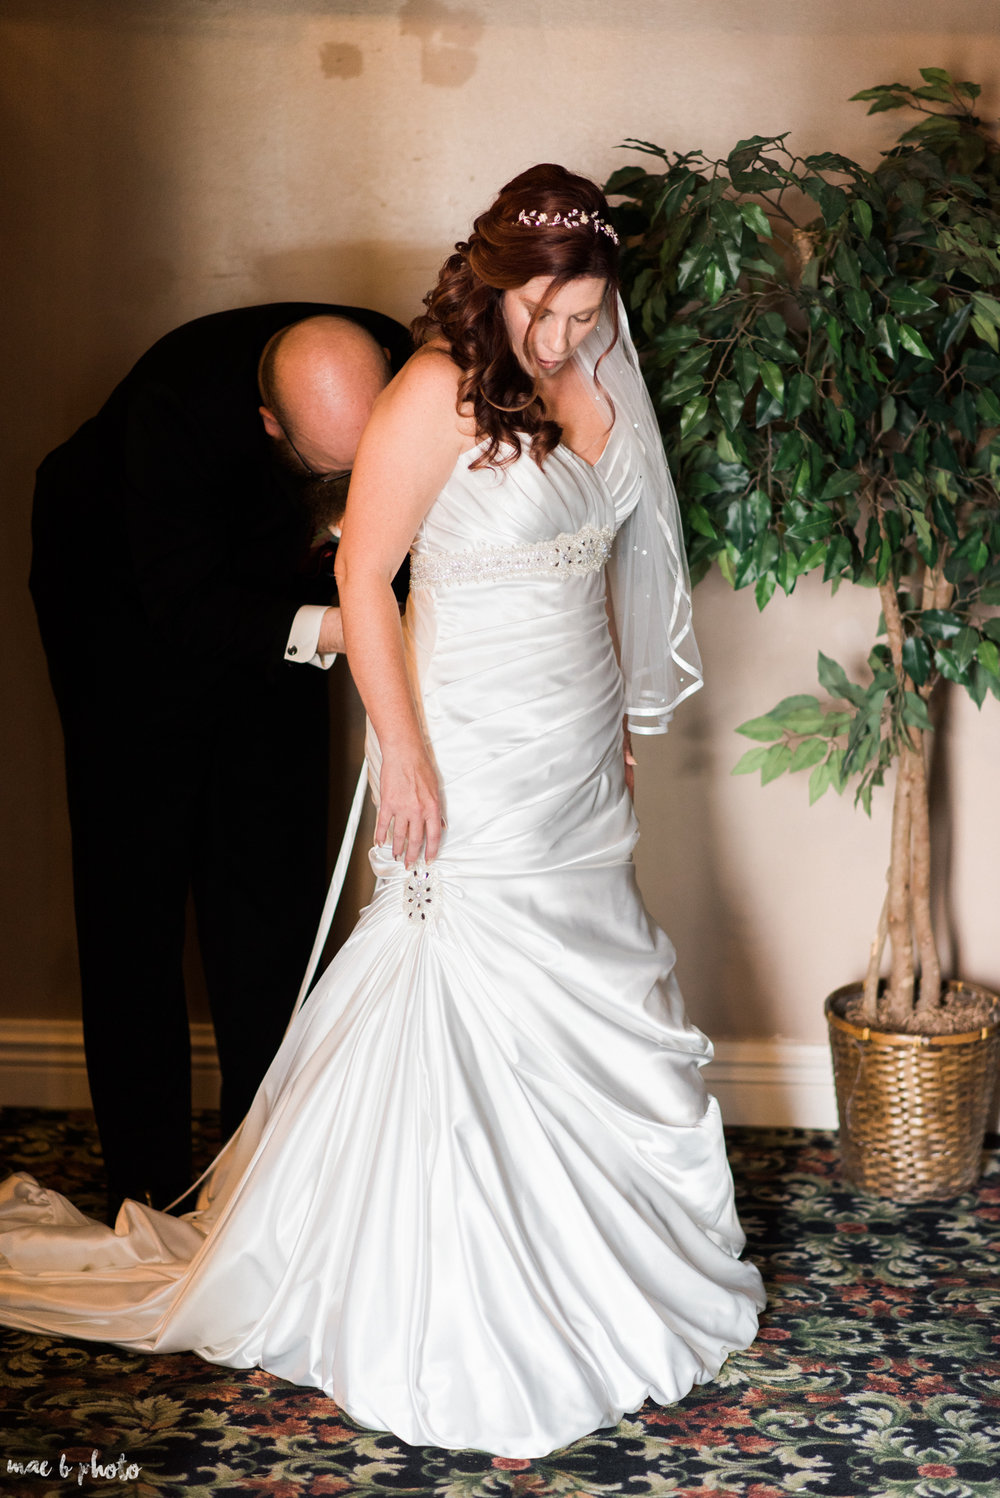 tracey and aaron's personal fall wedding at tiffany's banquet center in brookfield ohio_prep-14.jpg